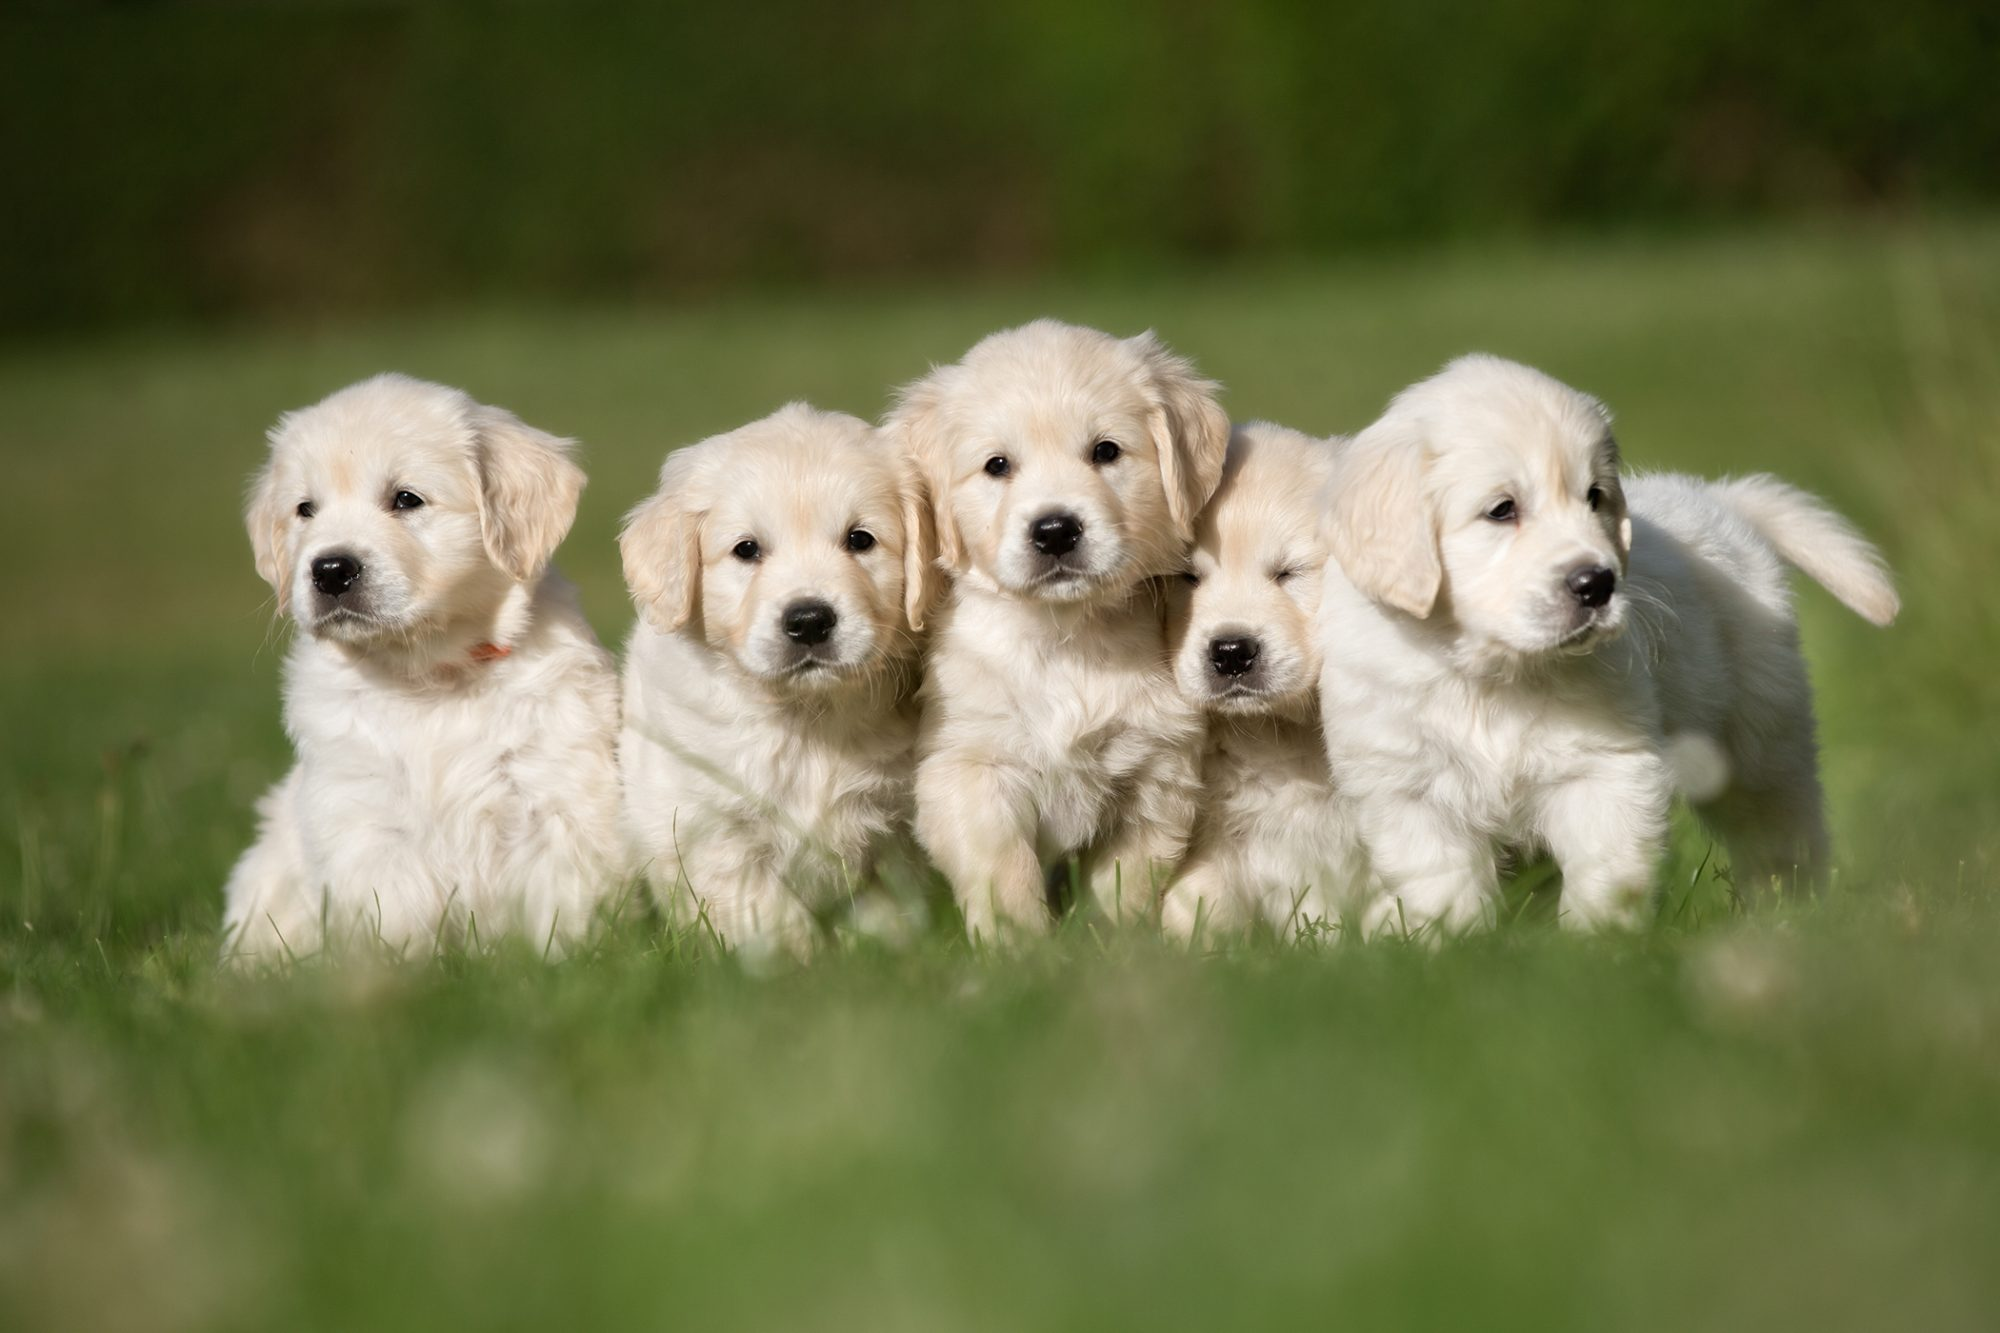 Litter of five golden retriever puppies outside in grass